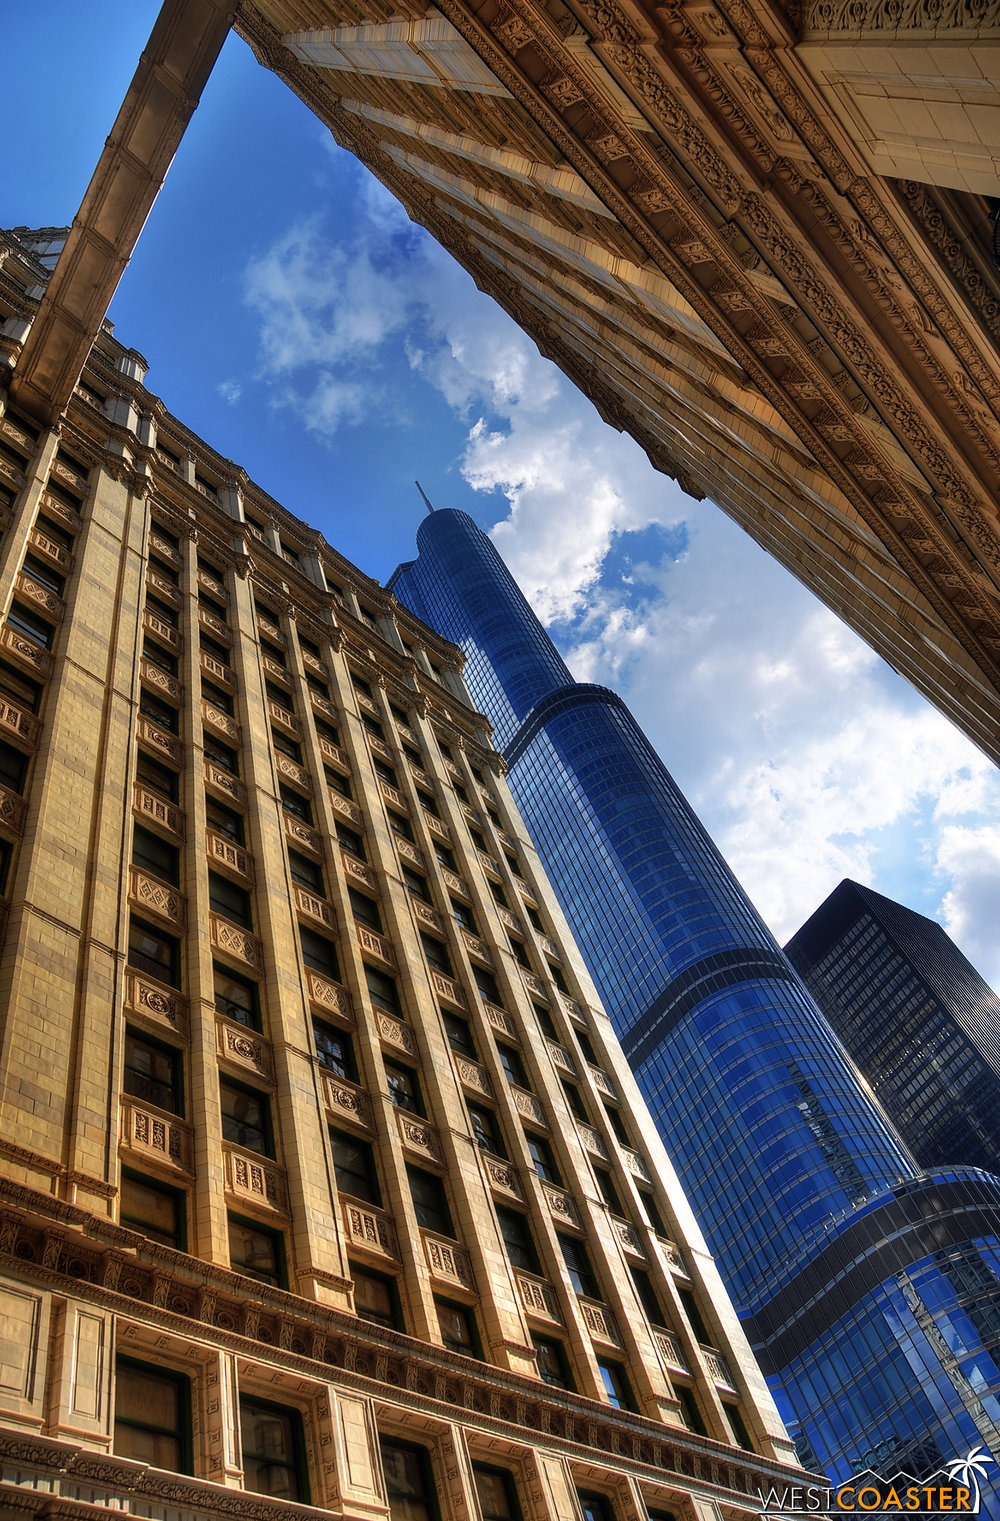 The sleek, glistening, and flashy Trump Tower looms behind the view created by the classic Wrigley Building.